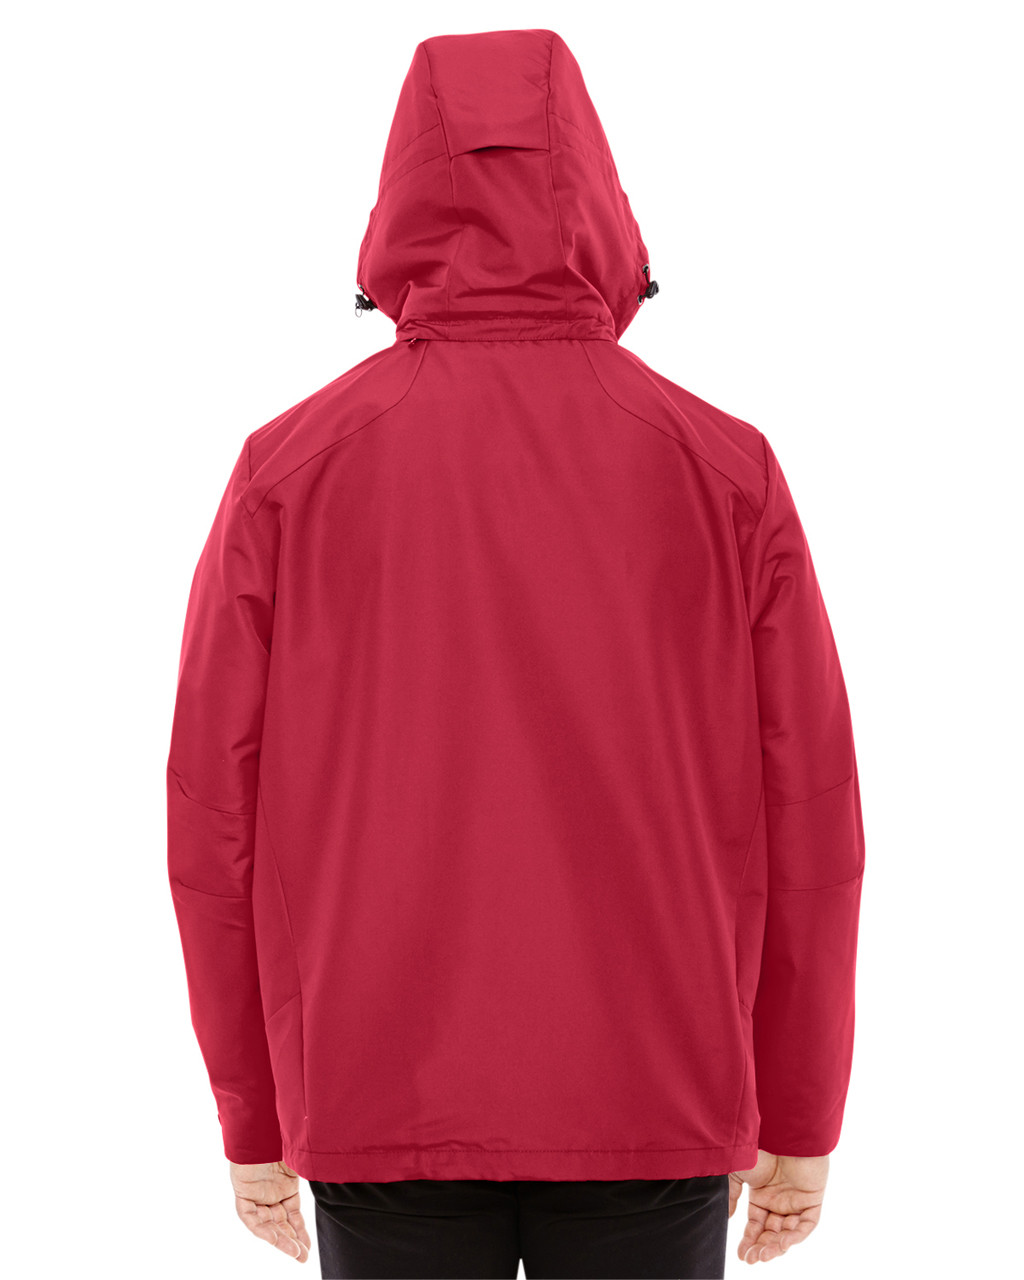 Classic Red/Black-back 88226 North End Men's Insight Interactive Shell Jacket | Blankclothing.ca